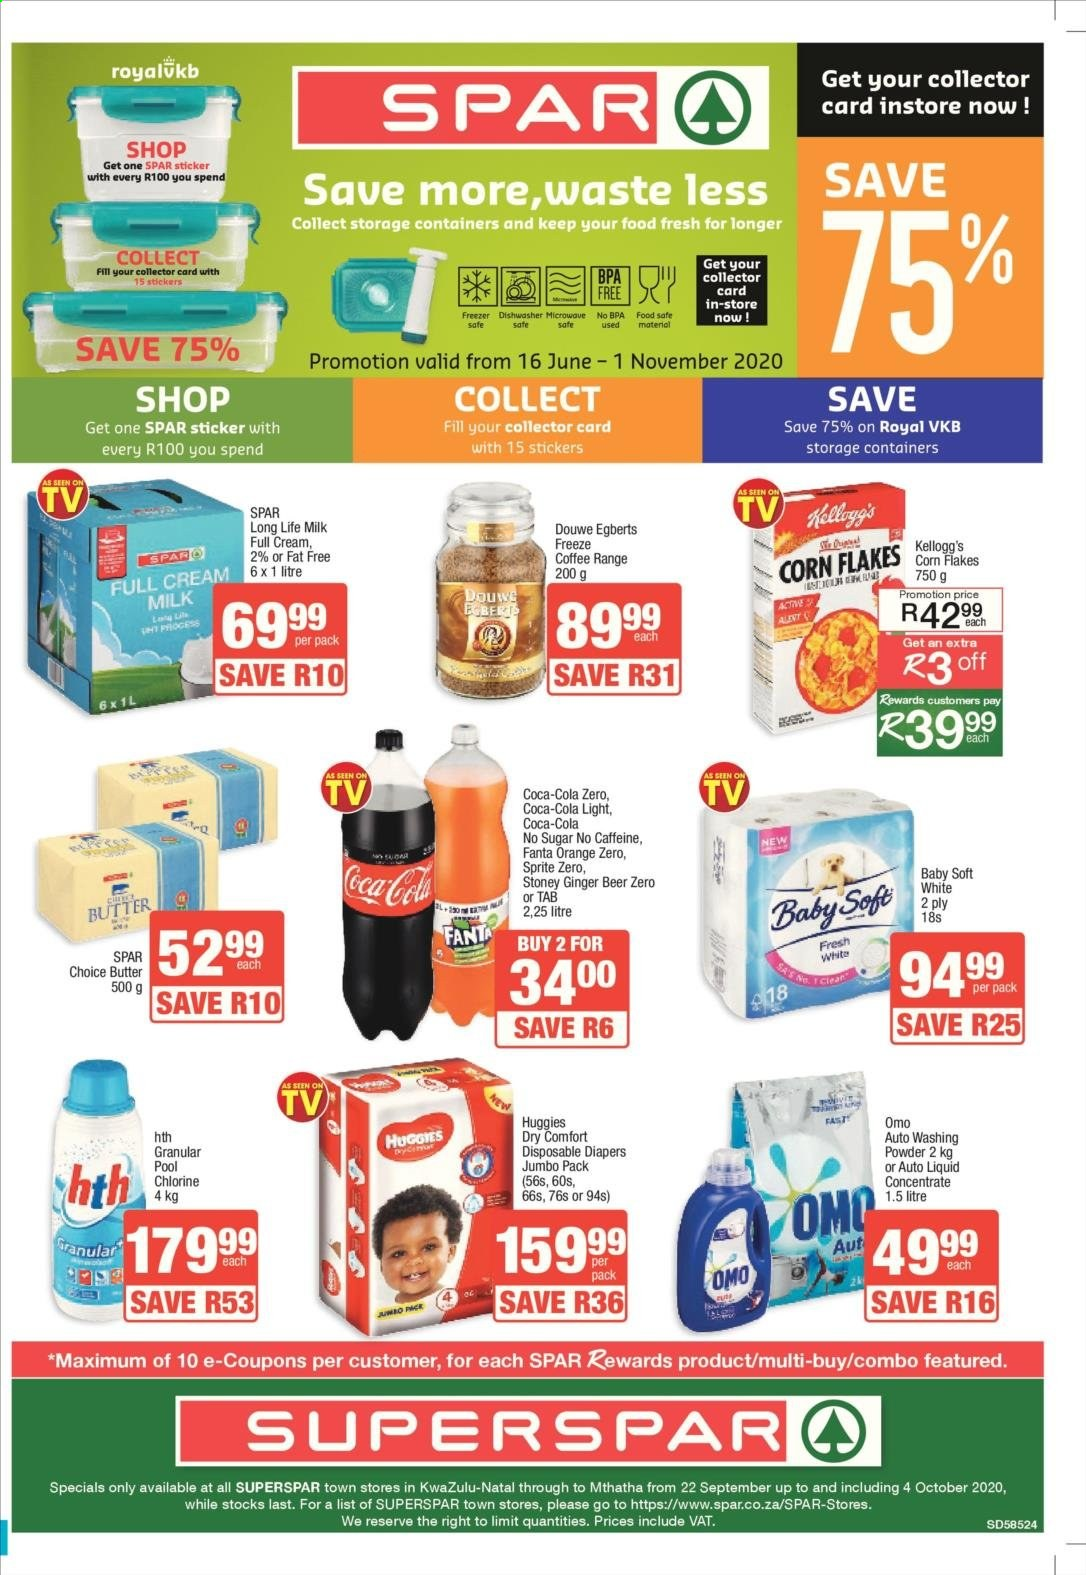 SPAR catalogue  - 09.22.2020 - 10.04.2020 - Sales products - beer, butter, coca-cola, coffee, corn, cream, dishwasher, freezer, ginger, microwave oven, milk, rack, sprite, stickers, sugar, huggies, coca-cola light, fanta, corn flakes, pool, douwe egberts, flakes, omo, safe, orange, diapers, washing powder, ginger beer, long life milk, microwave, sticker, storage container. Page 1.